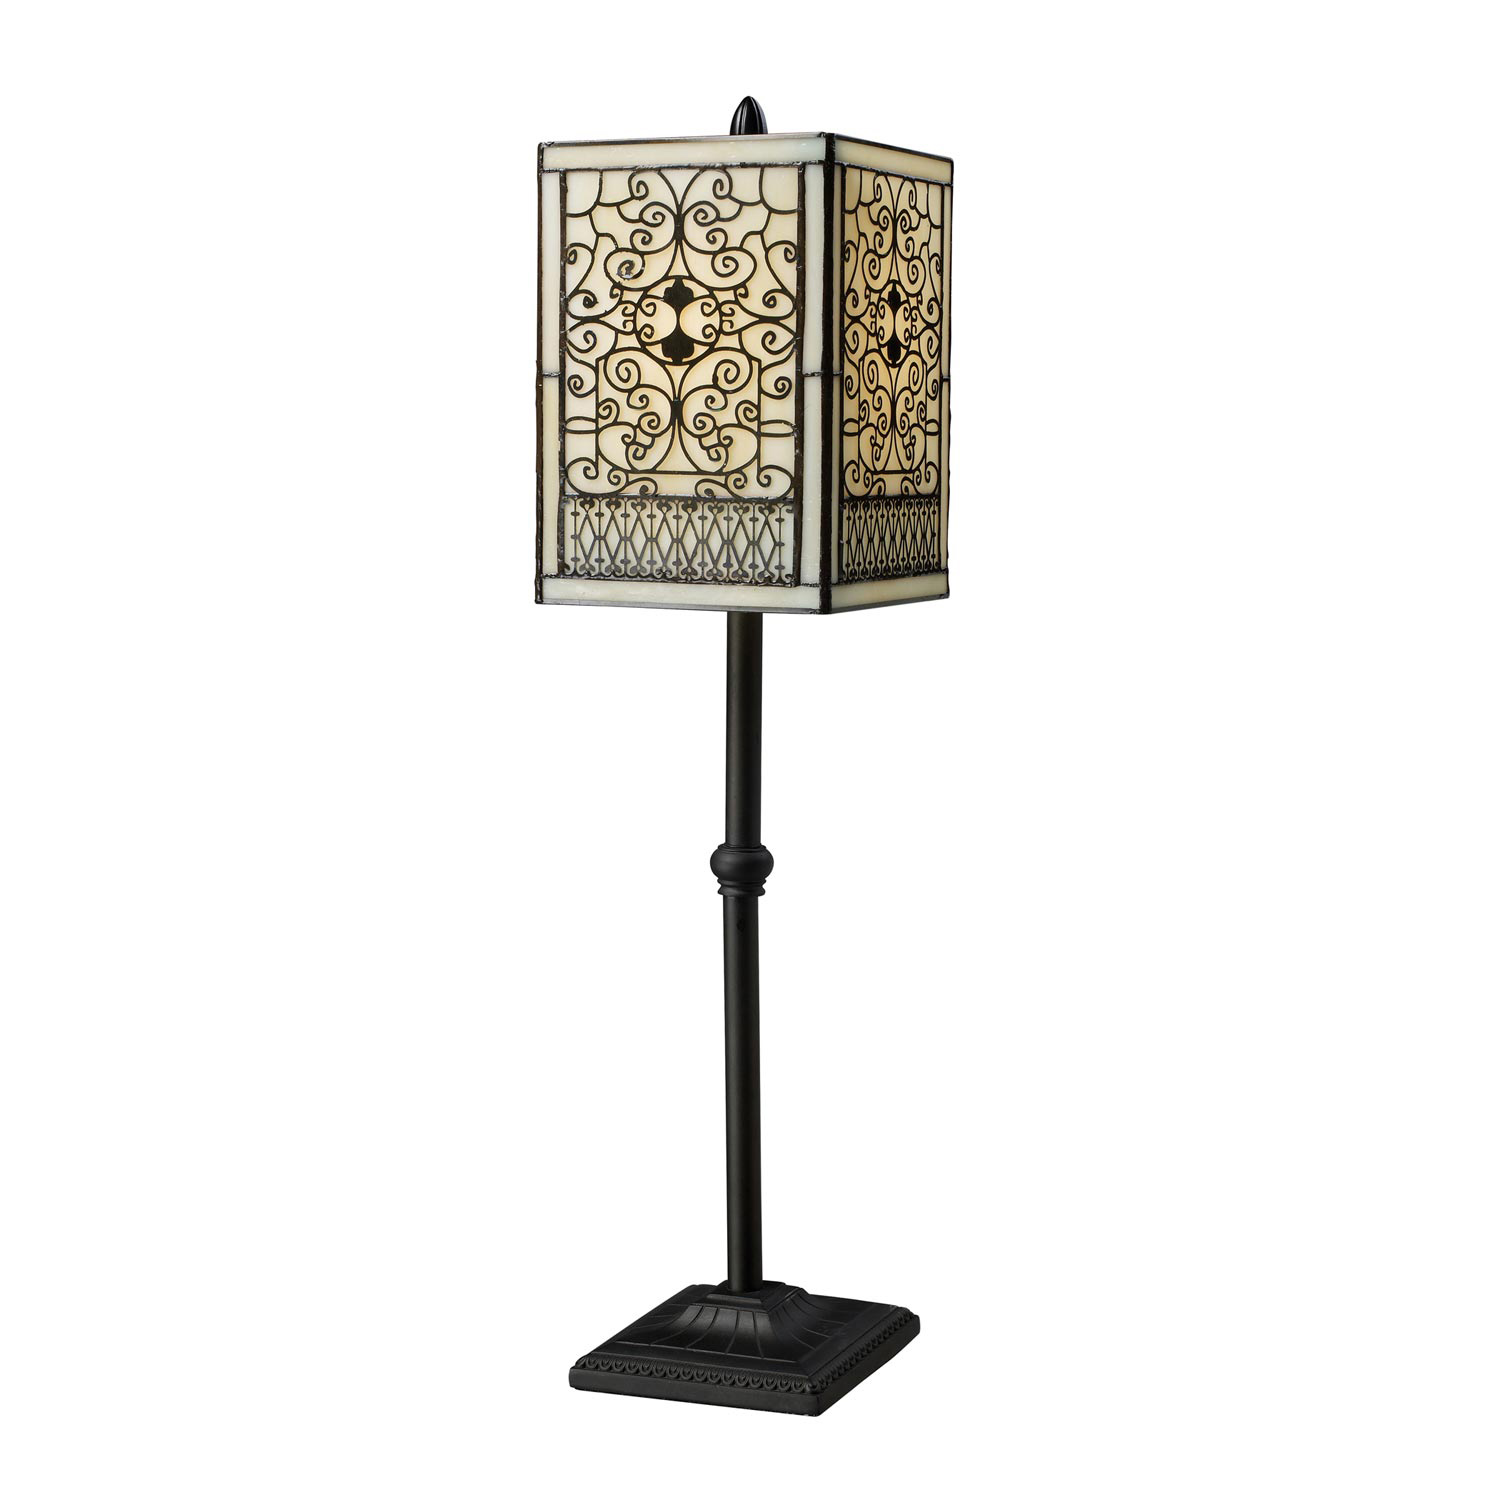 Elk Lighting D1851 Adamson Table Lamp - Tiffany Bronze